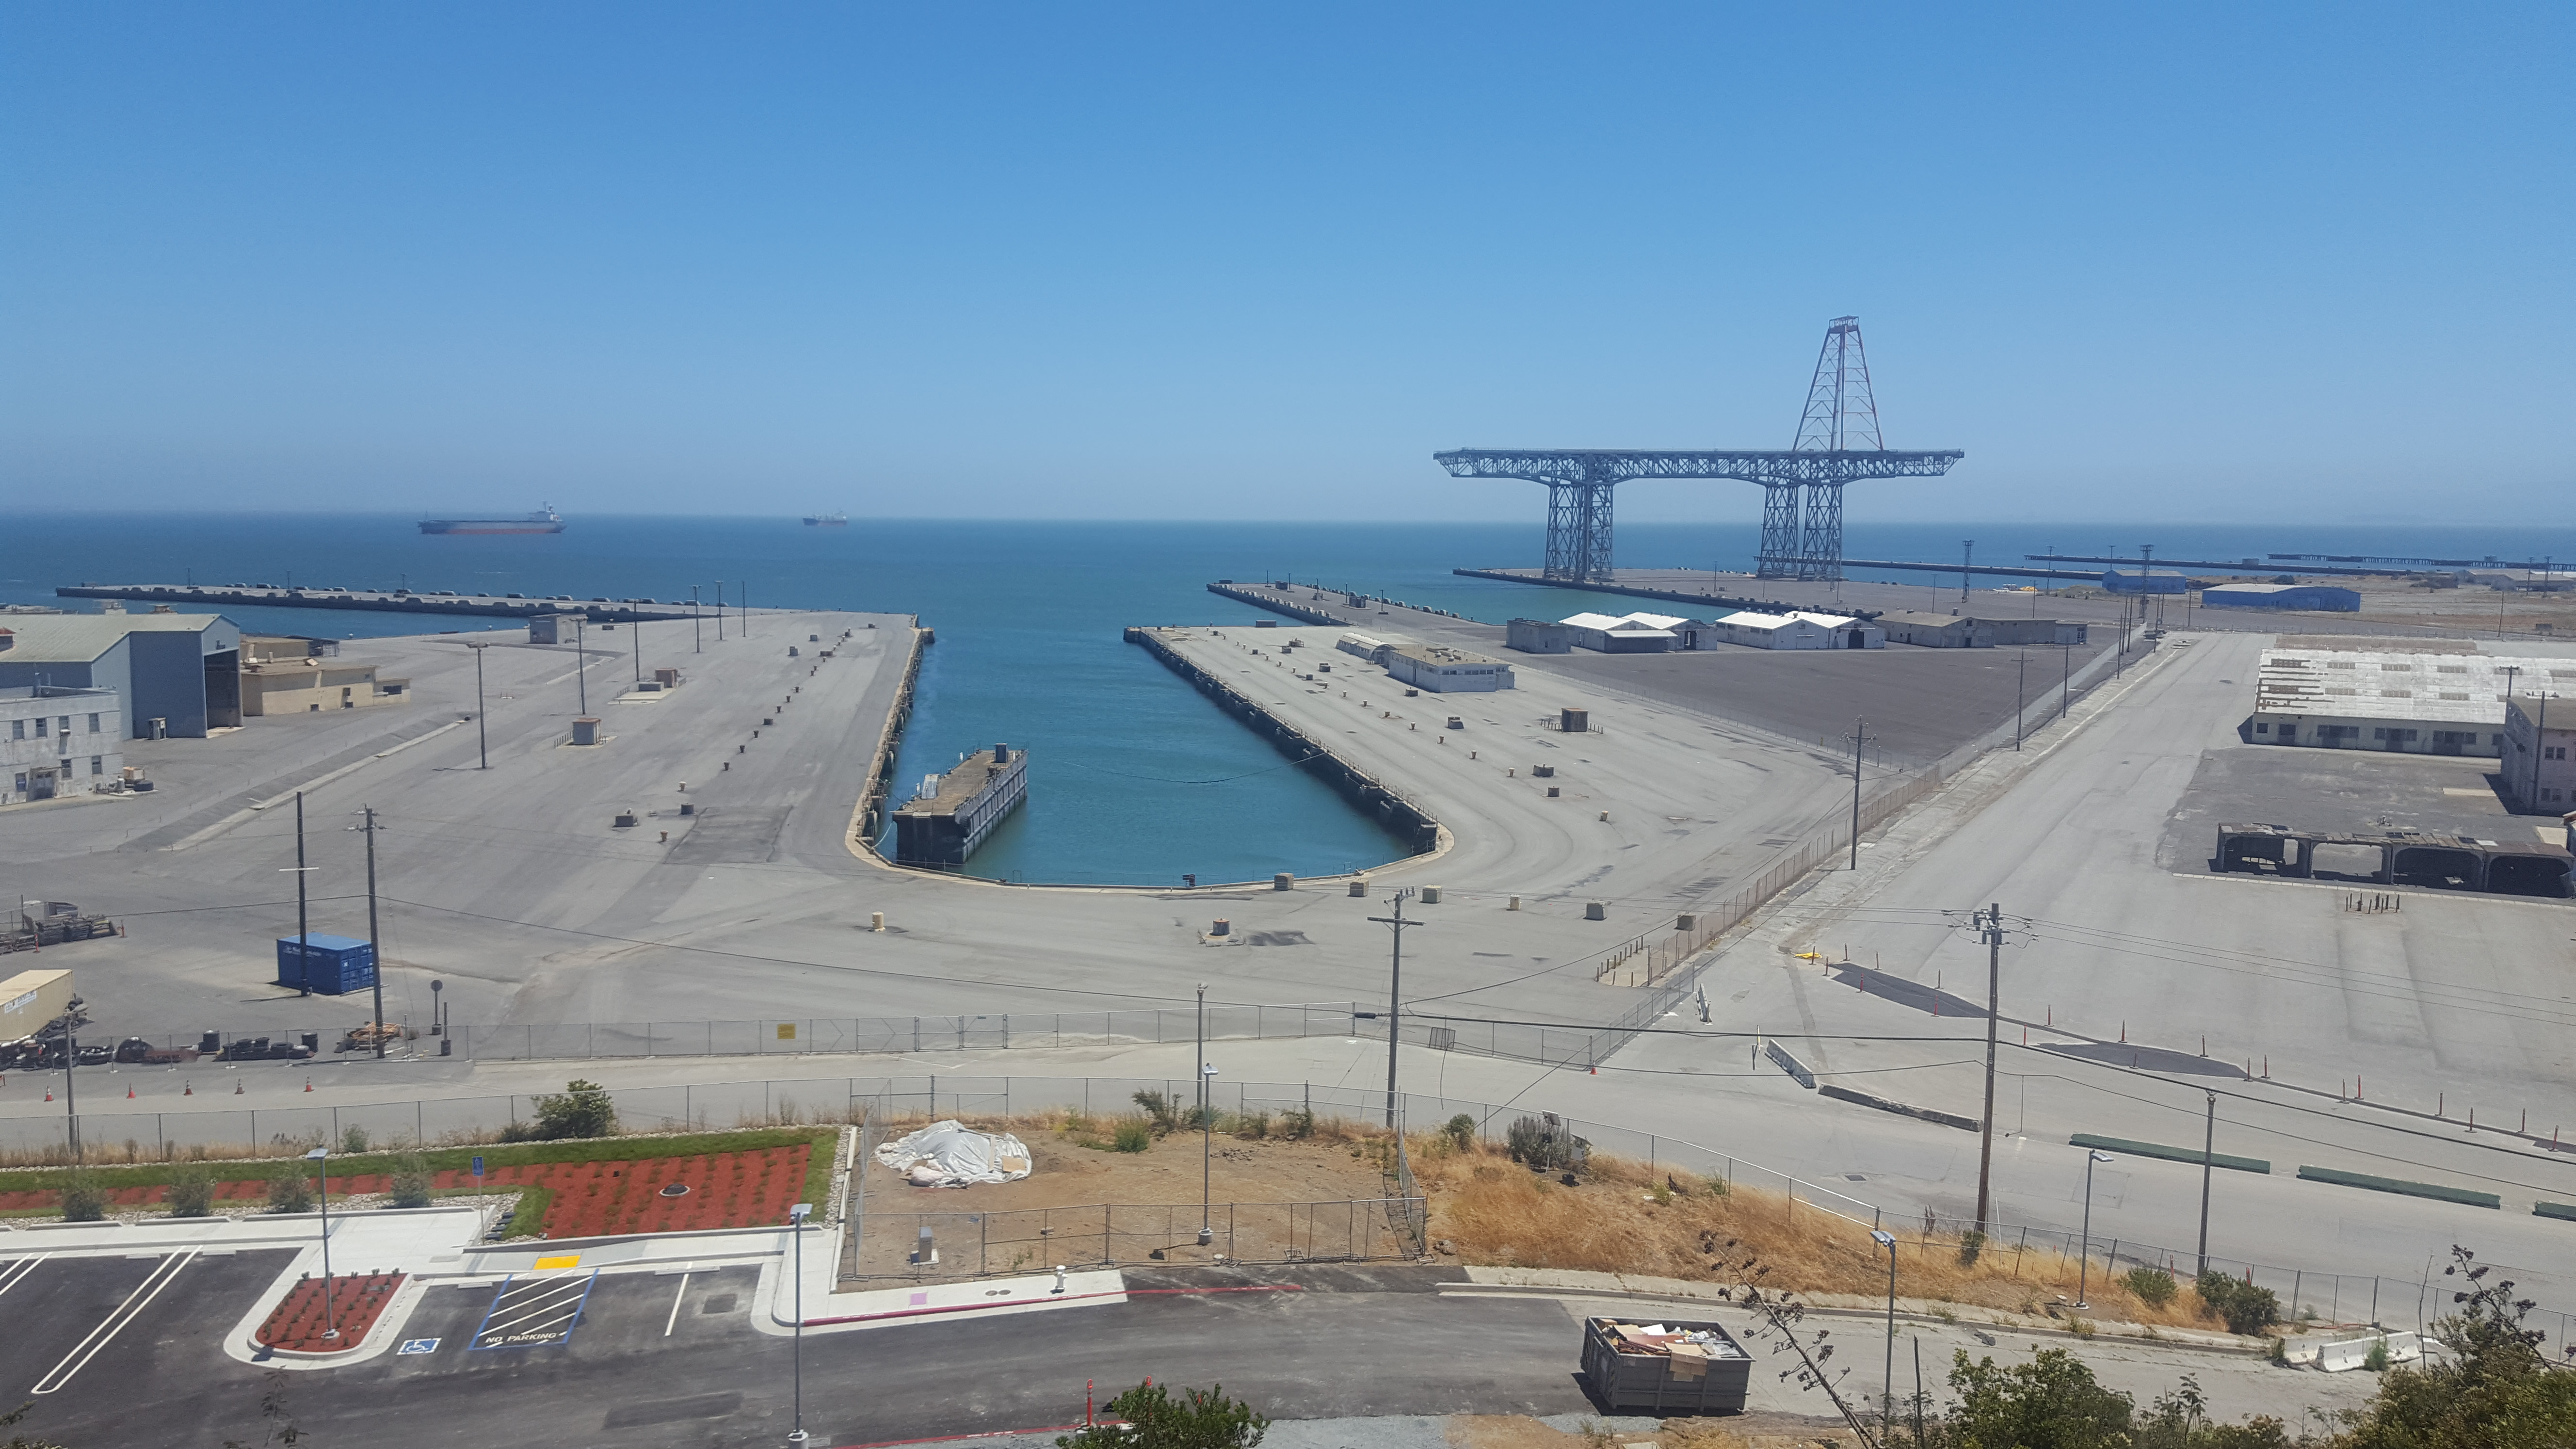 Home to what was at one time the largest gantry crane in the world and the largest drydock in the United States, the city and a major developer want to build thousands of units of housing at the polluted former naval shipyard at Hunters Point. Visible fro